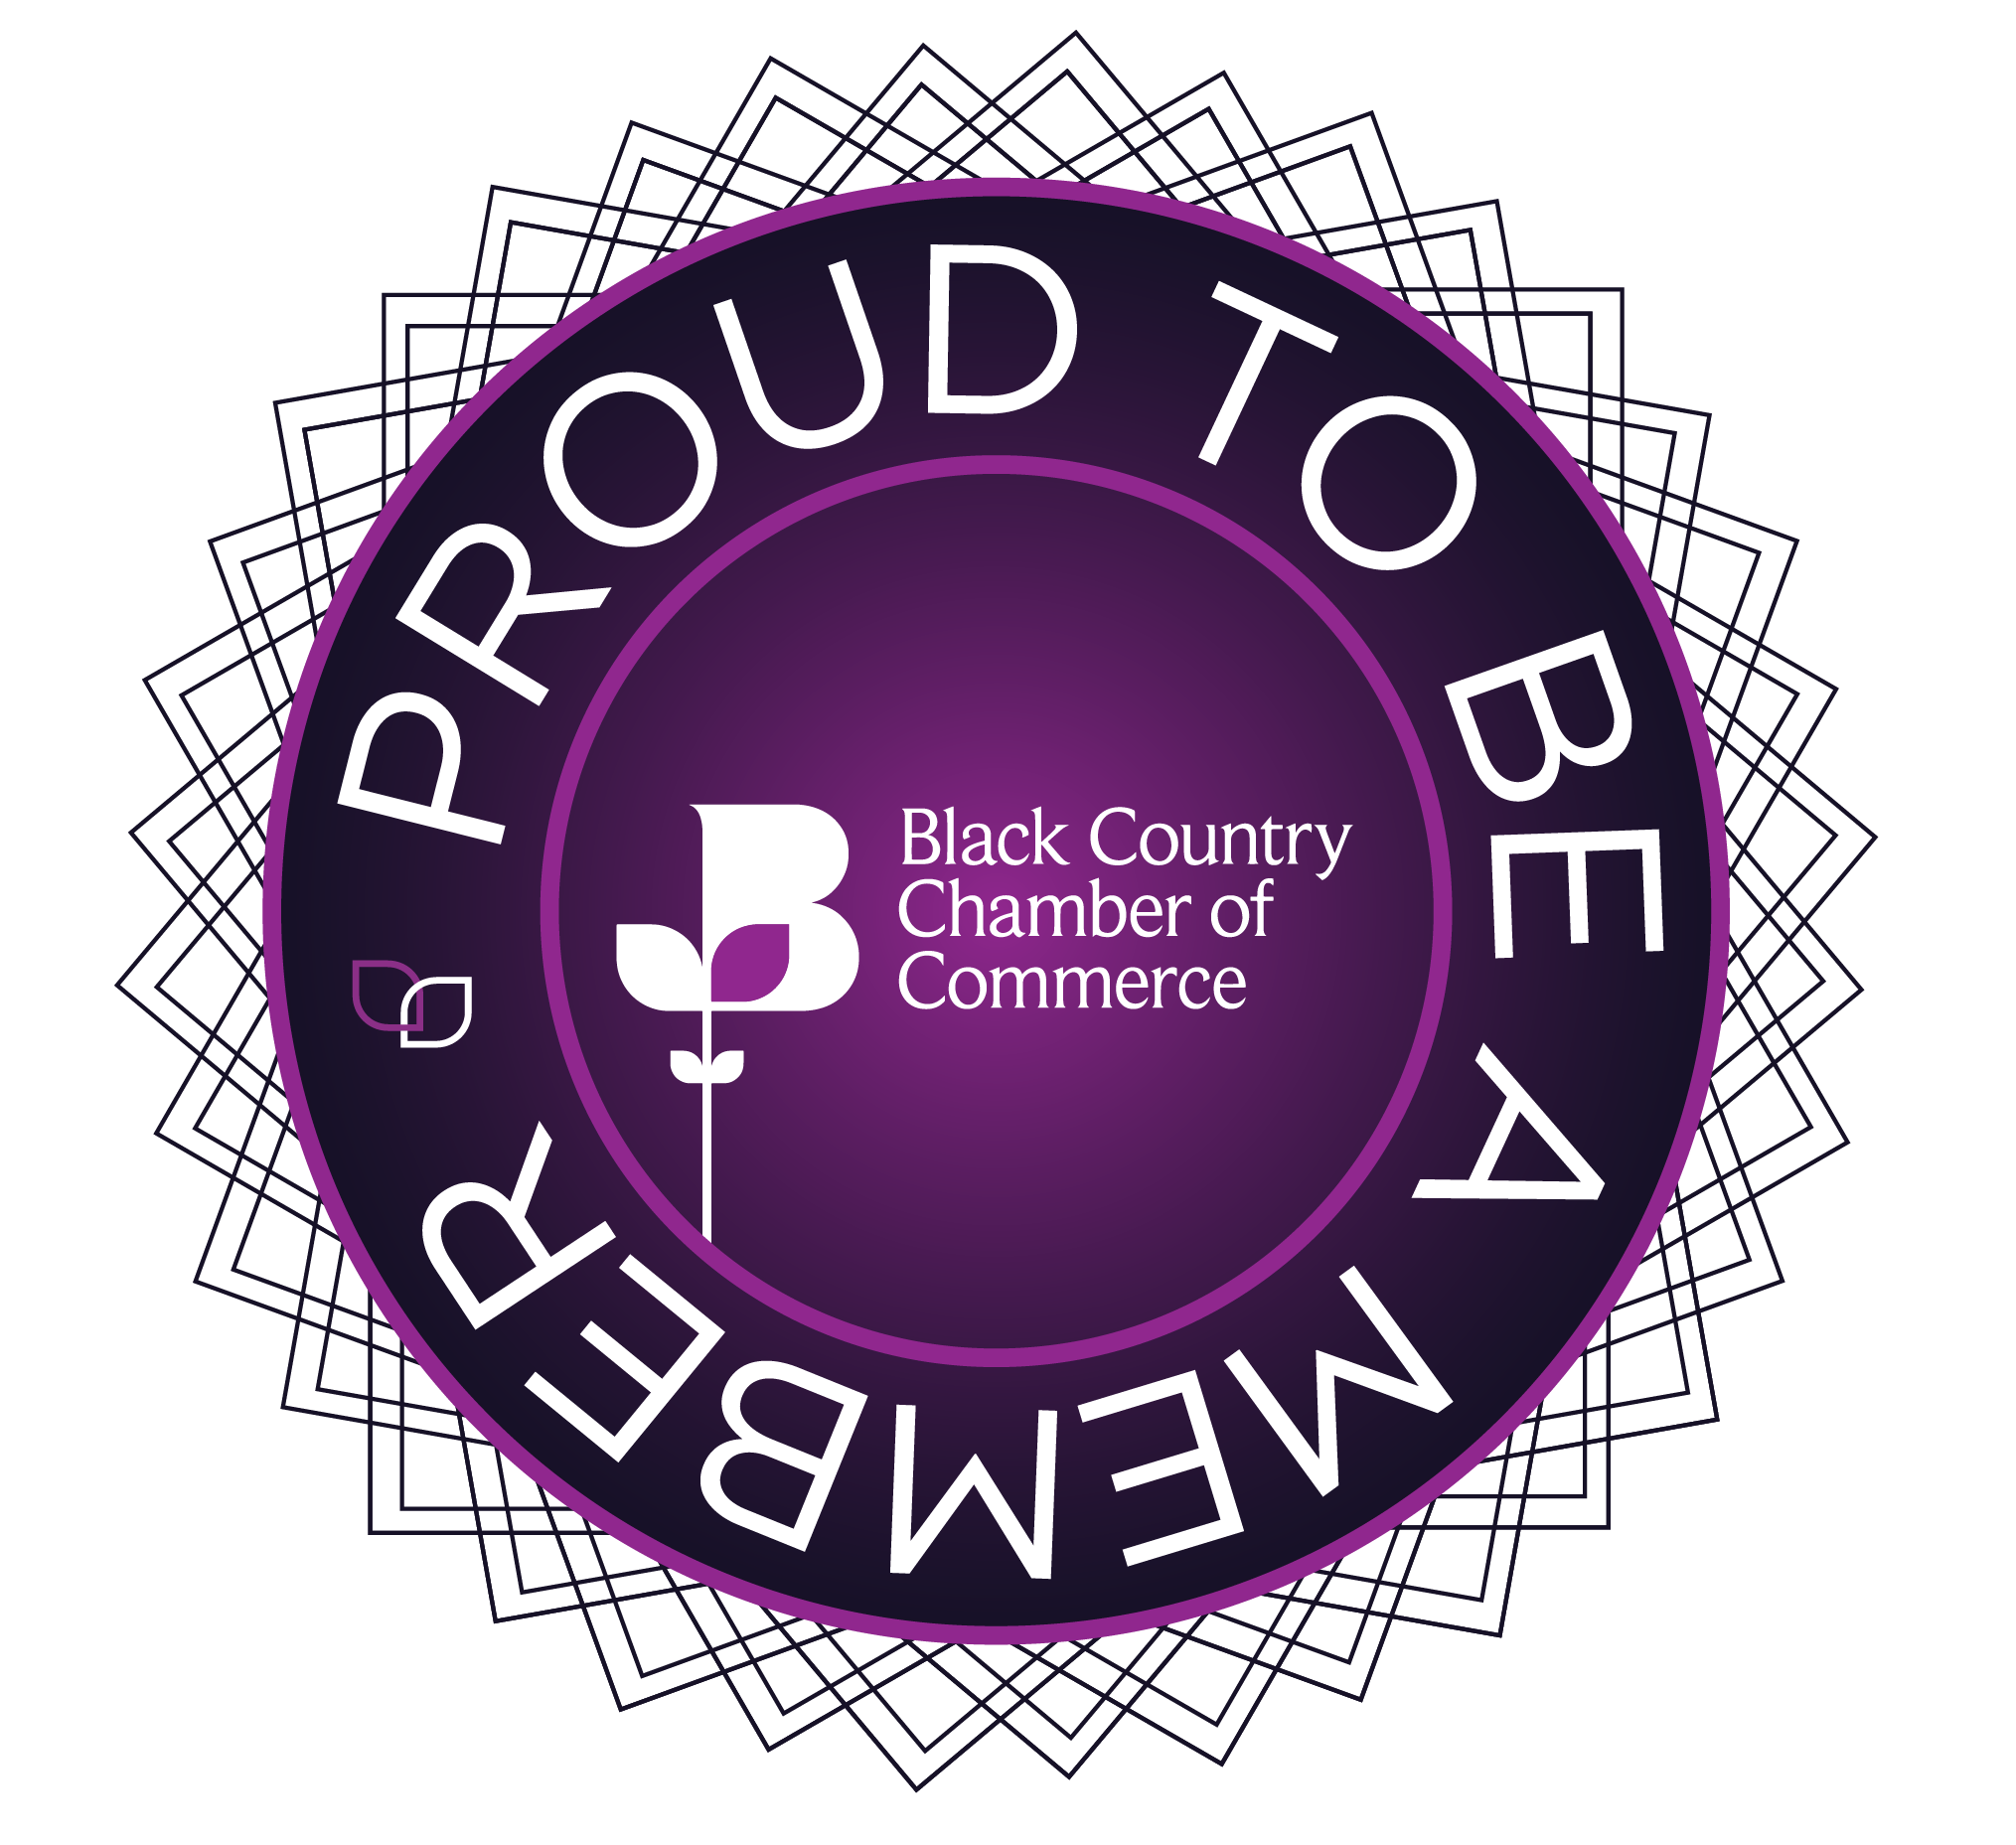 New Proud to be a Member badge